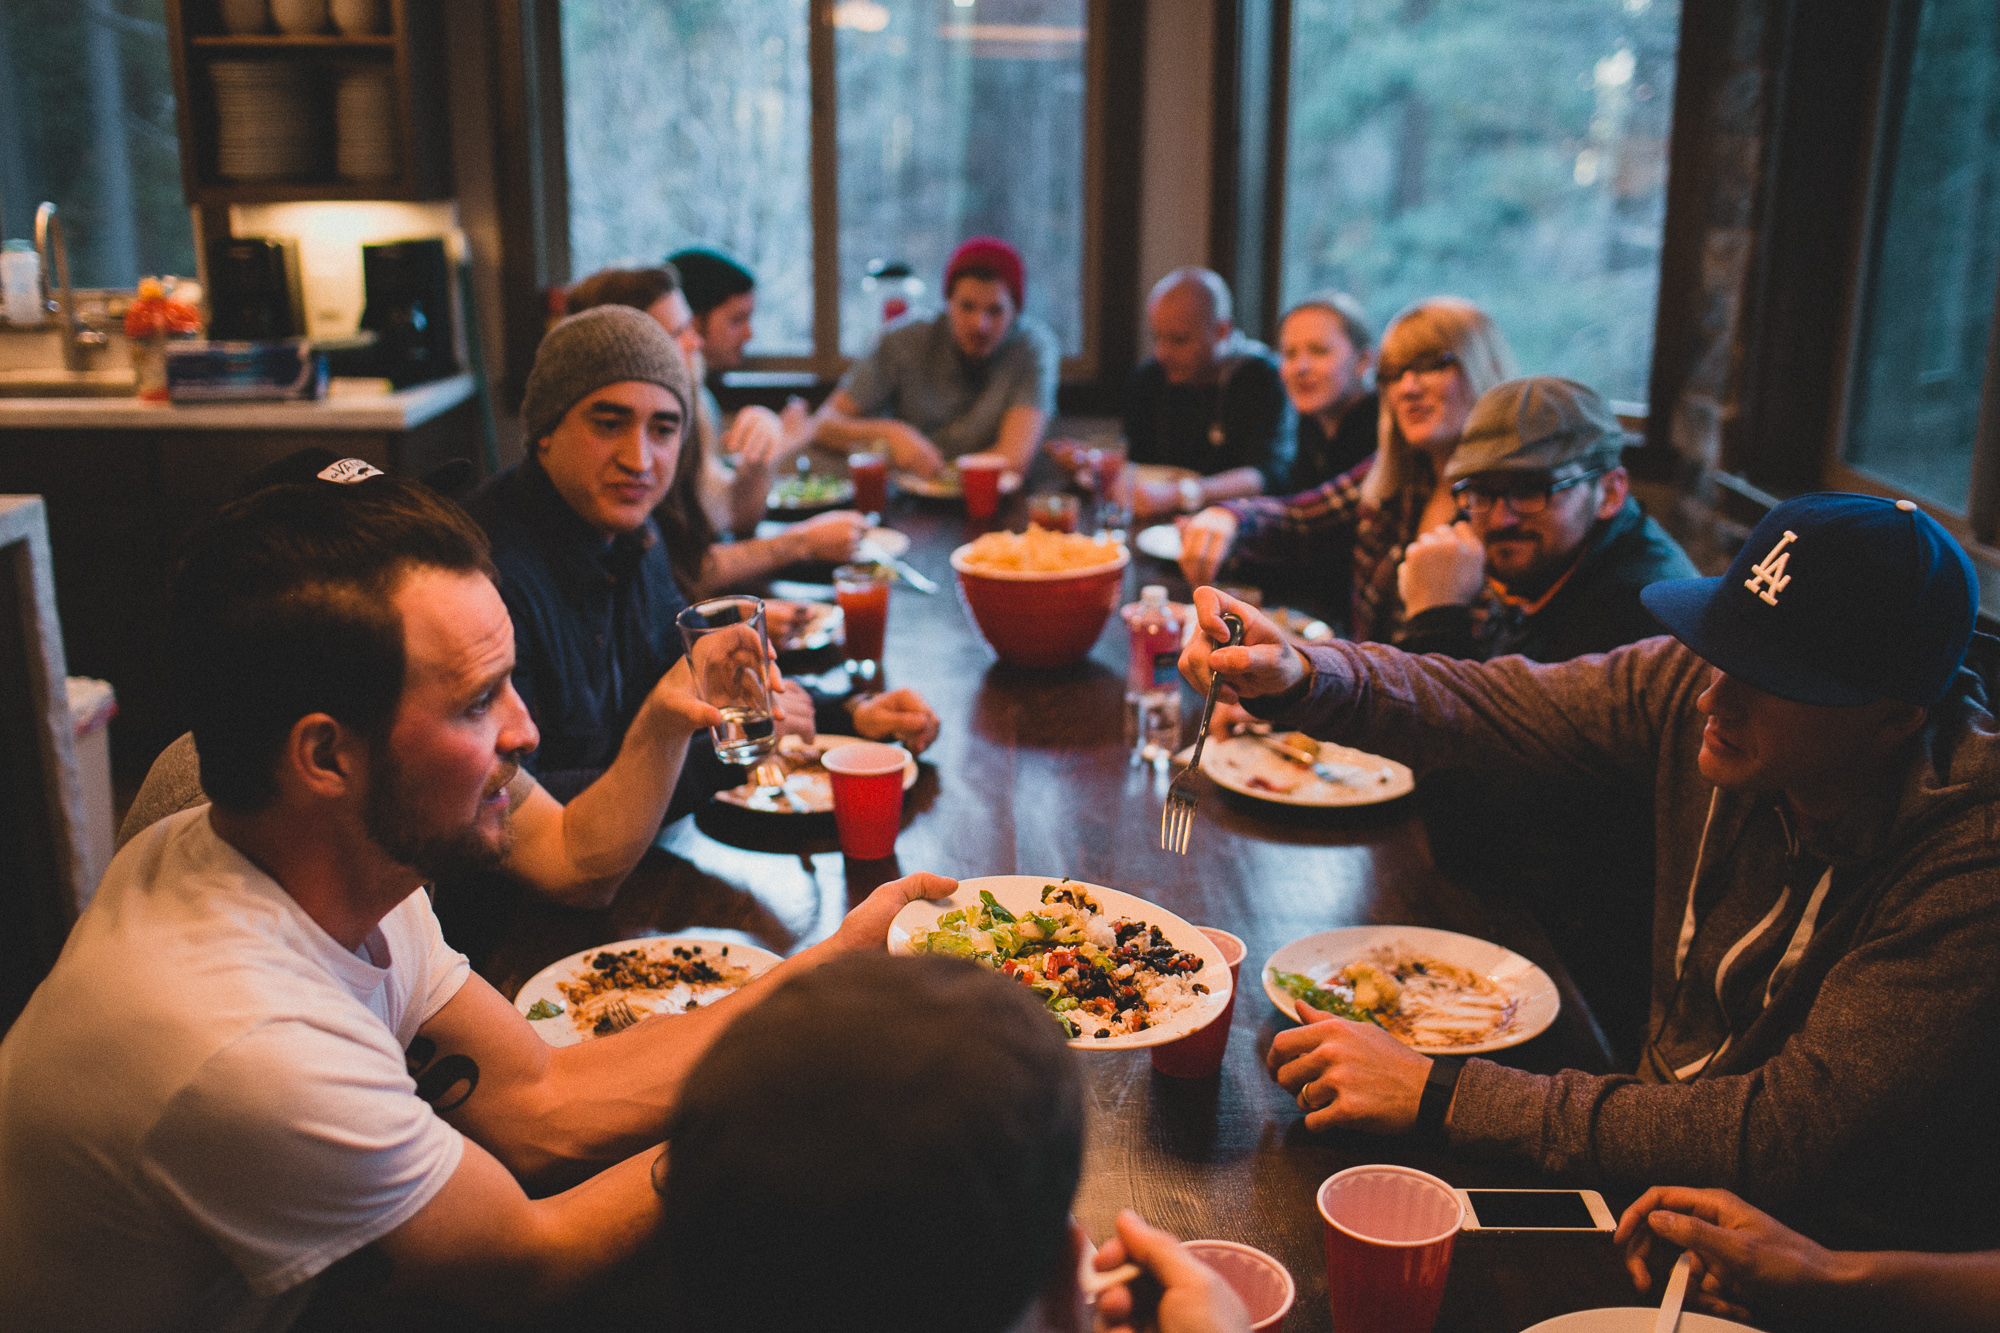 Eating meals together, at the same table, created a real sense of family where attendees felt free to be themselves. Photo: Rico Castillero